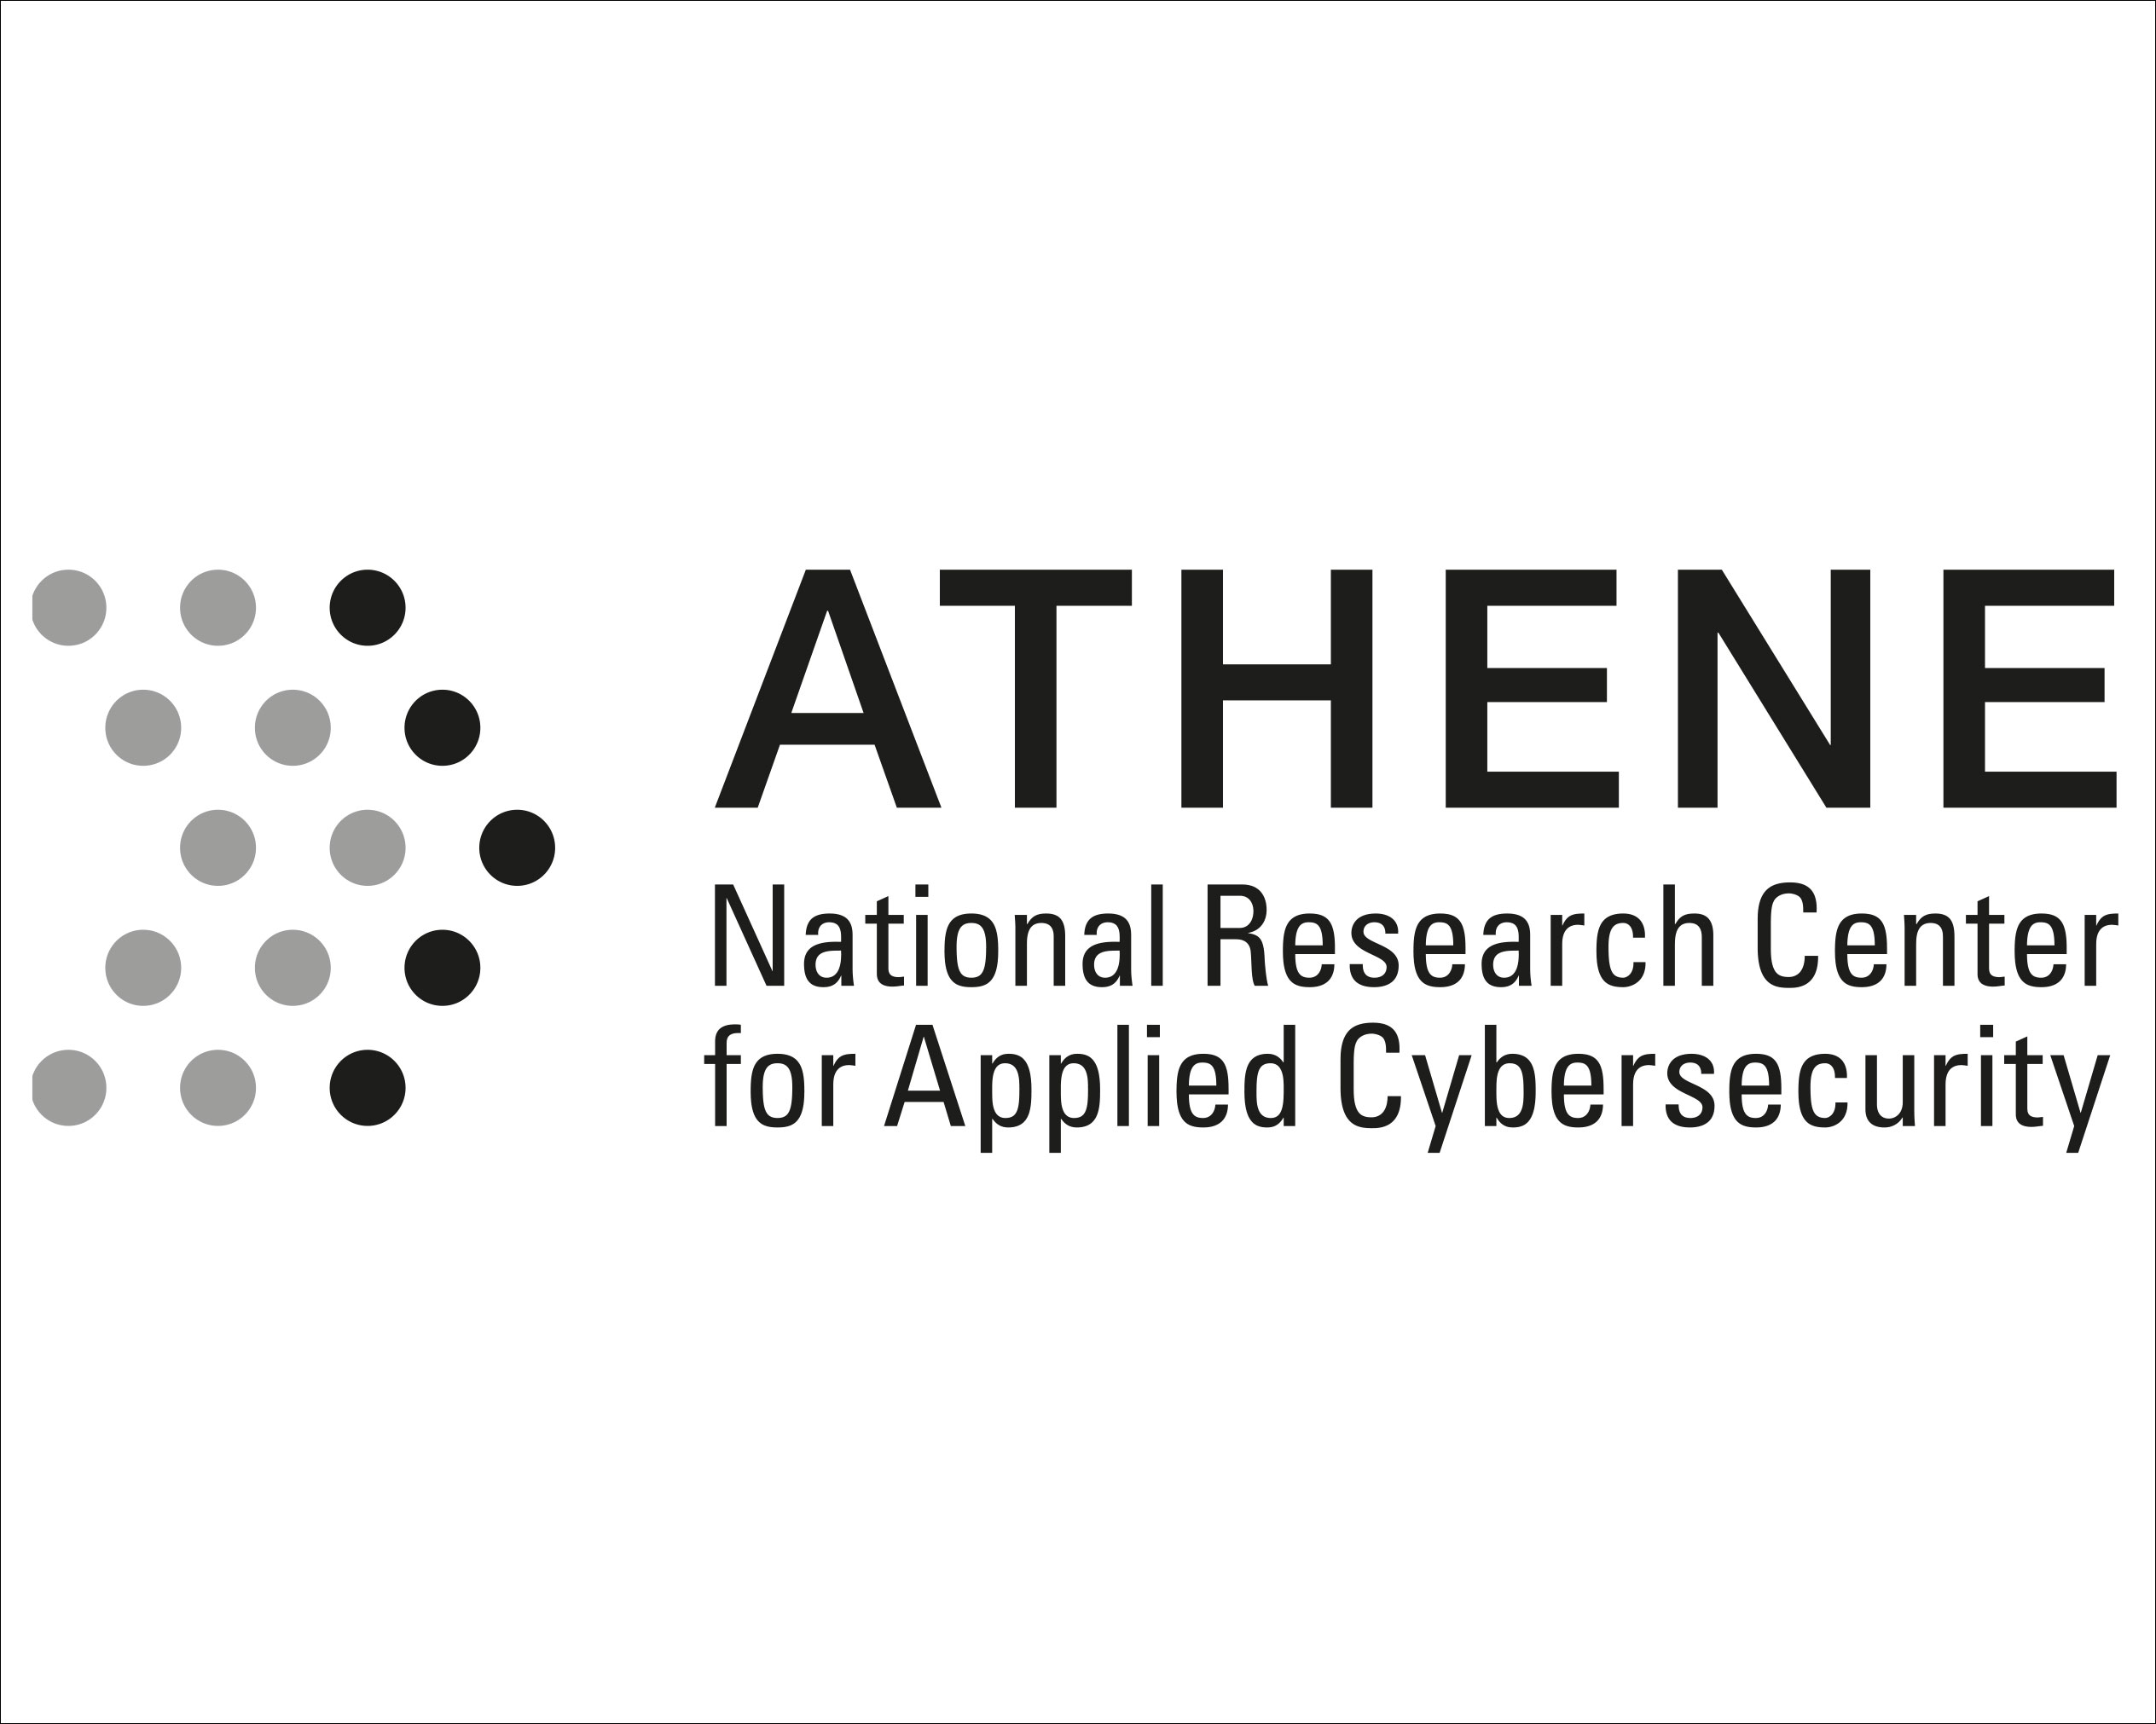 Logo des it-sa Partners ATHENE National Research Center for Applied Cybersecurity